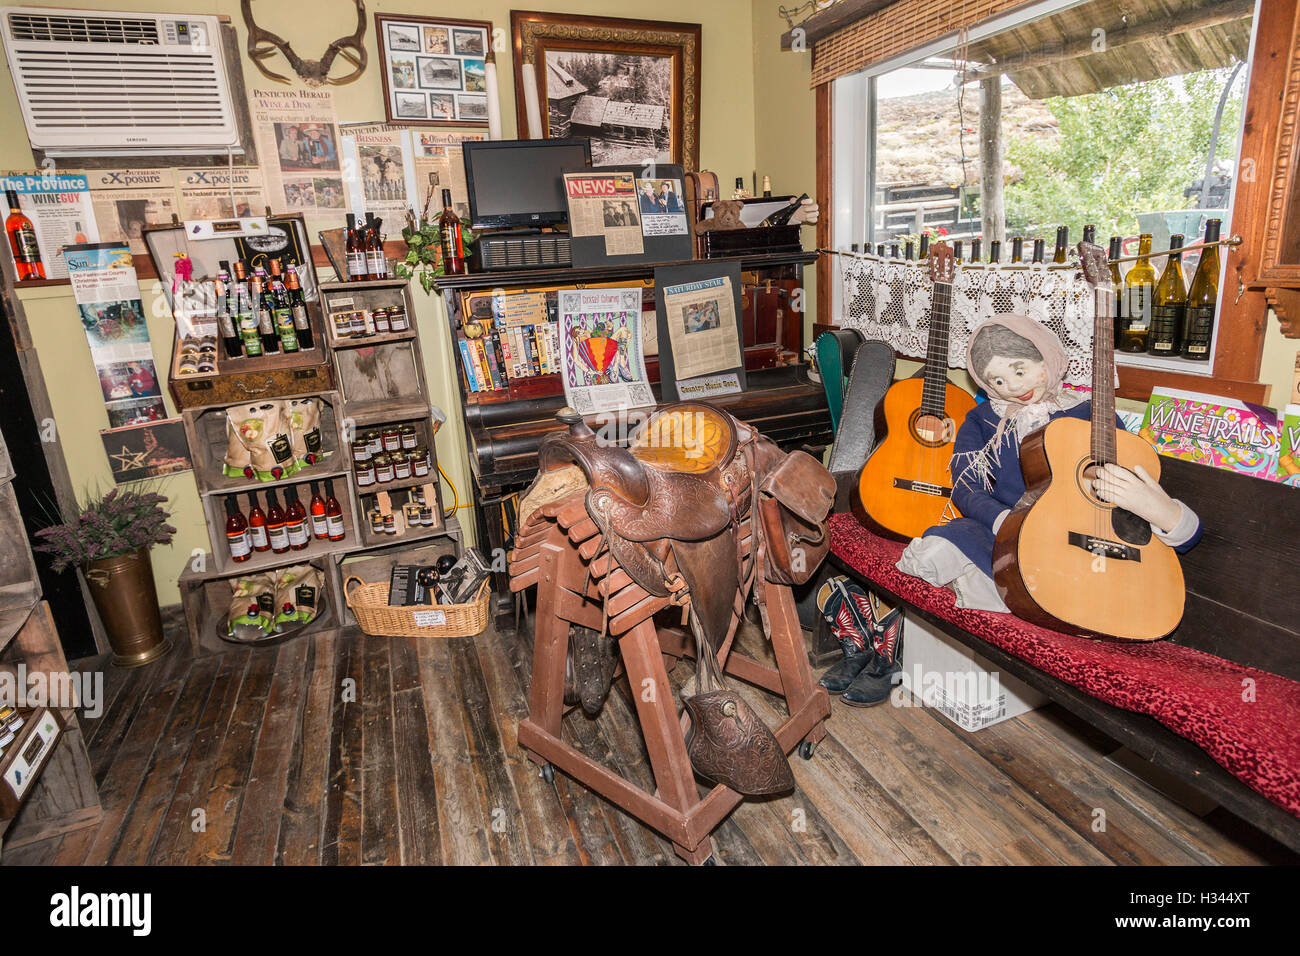 Eclectic collection of western kitsch at Rustico Farm & Cellars winery in Oliver, southern Okanagan Valley, - Stock Image